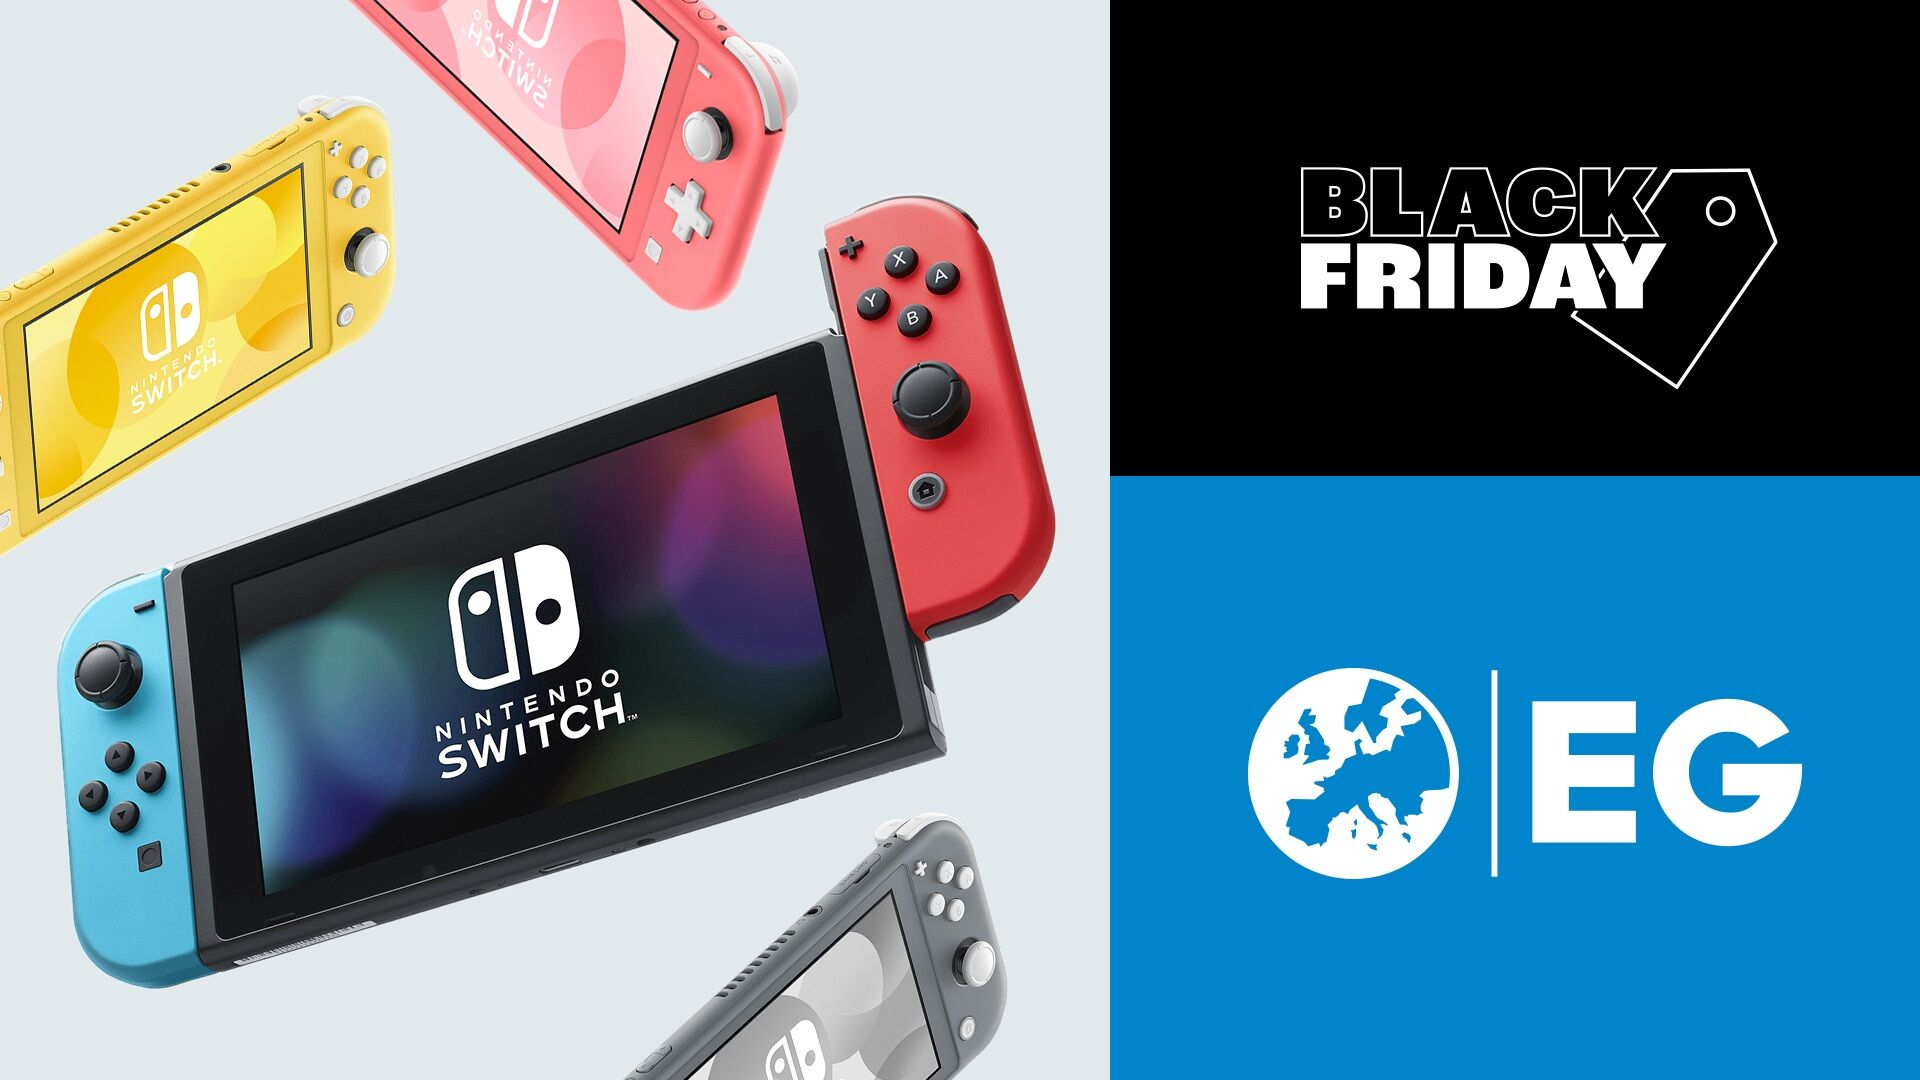 Nintendo Switch Black Friday Deals 2020 Eurogamer Net